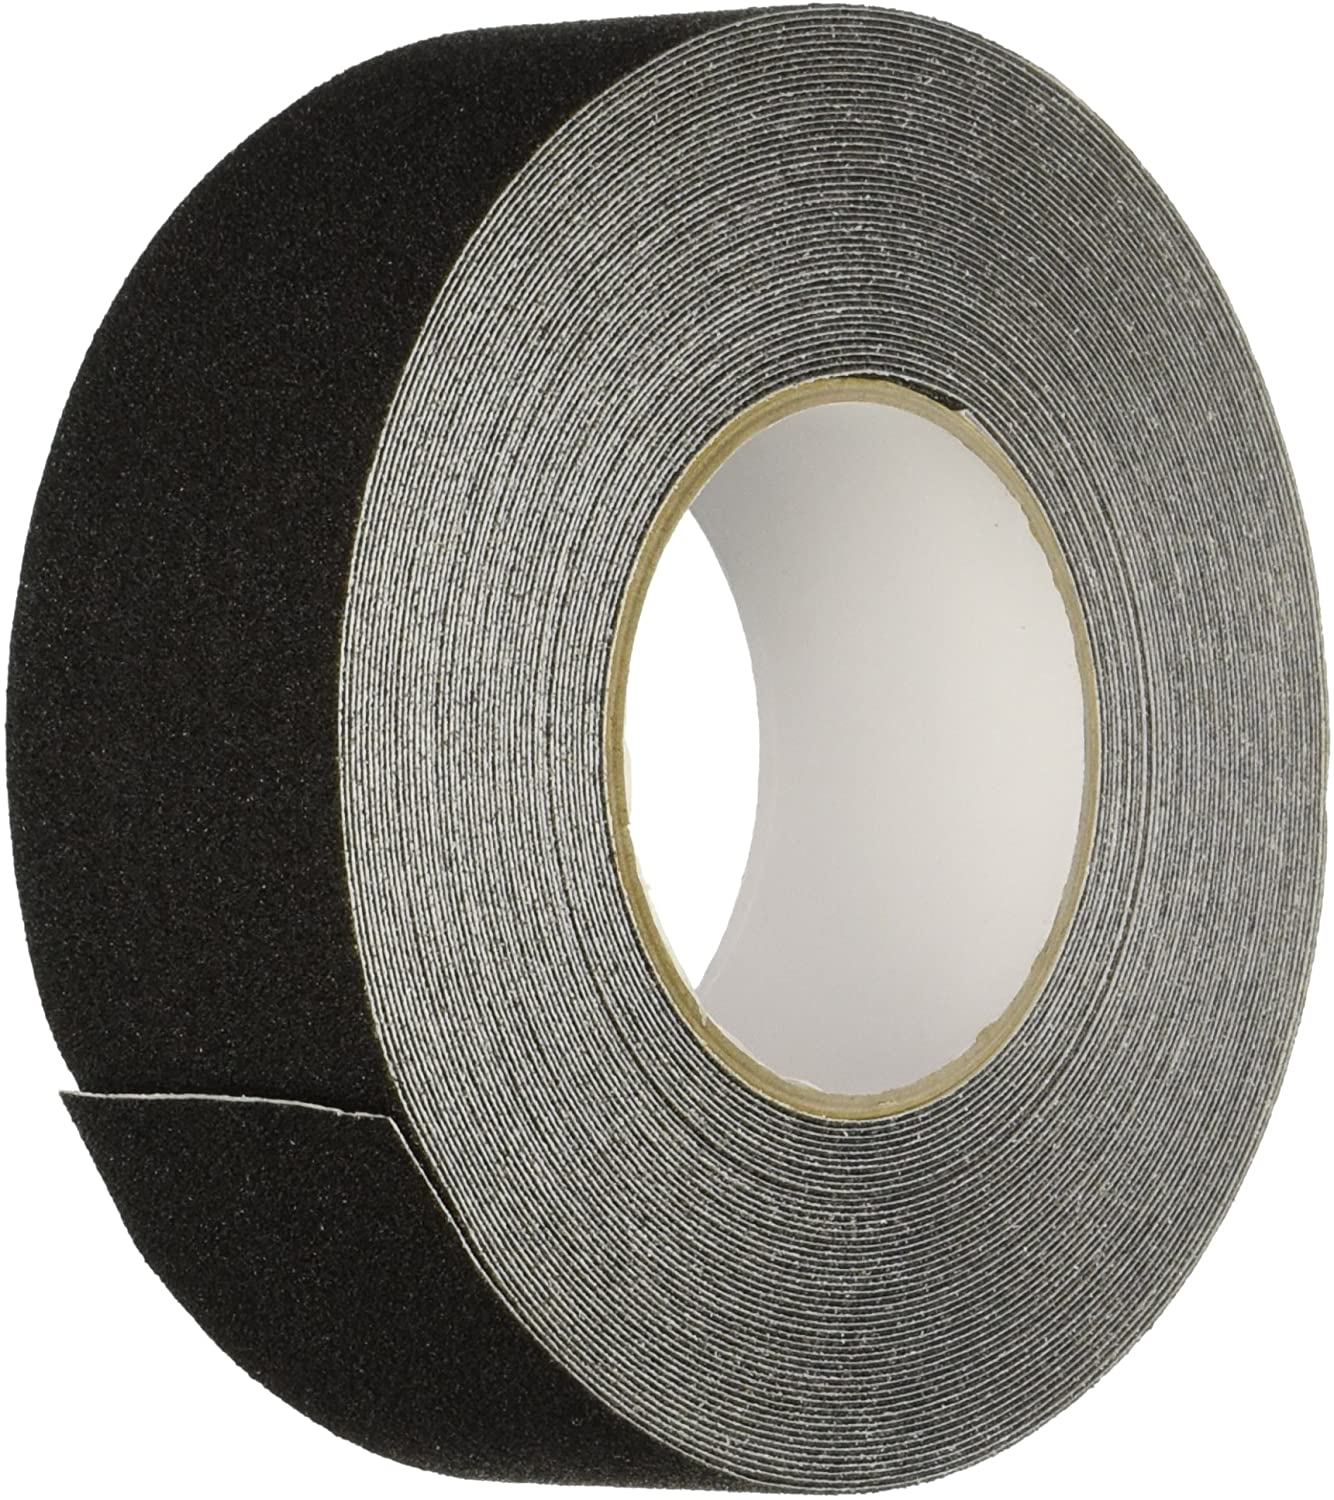 "24"" X 60' Foot Roll Heskins Safety Grip Anti Slip Tape Black NSTS24N"